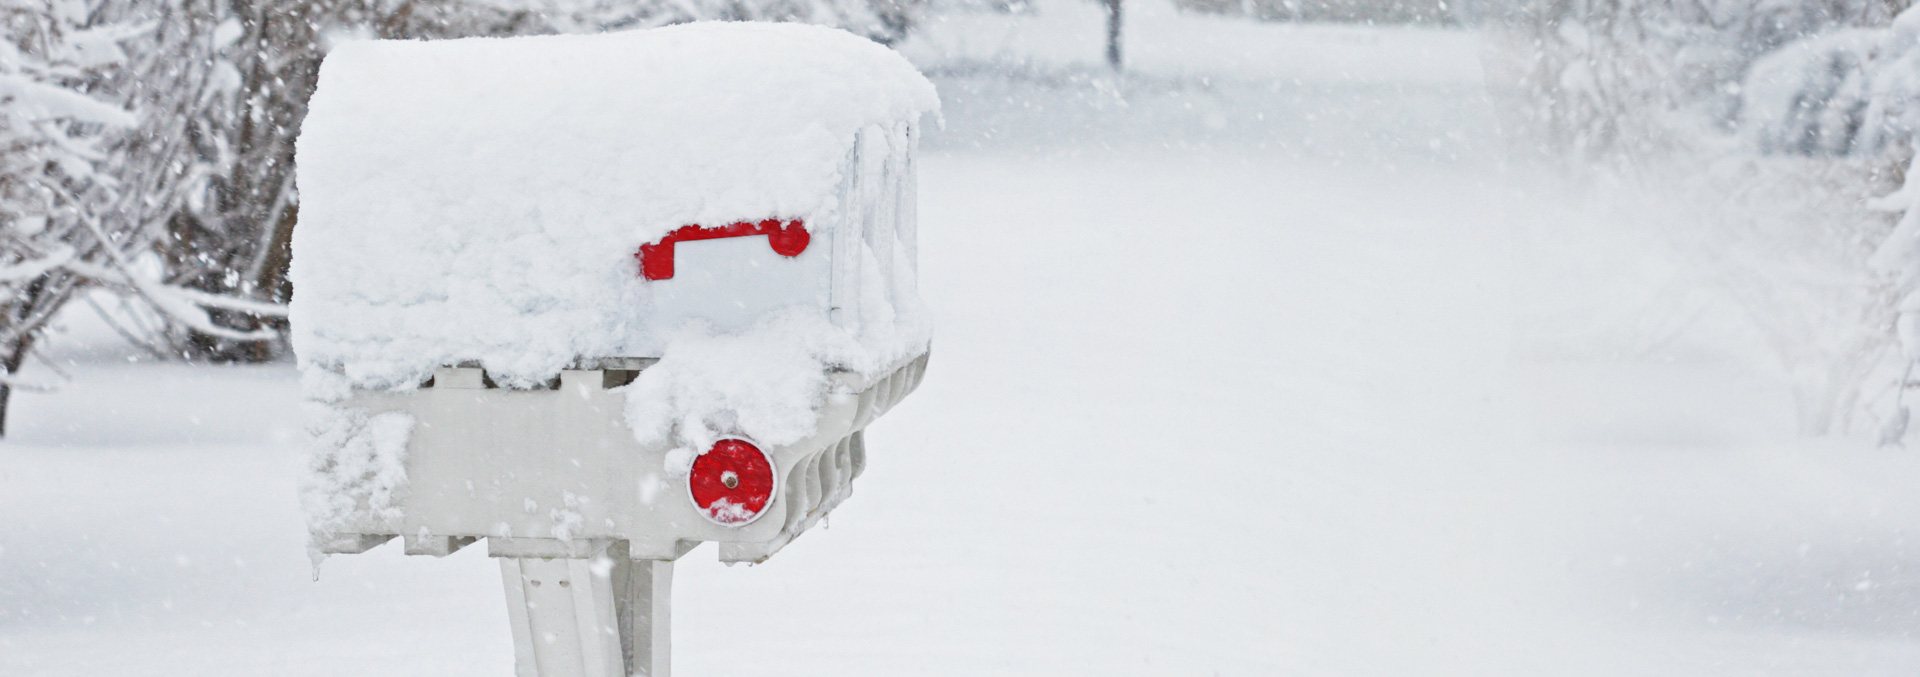 Winter snow and a mailbox